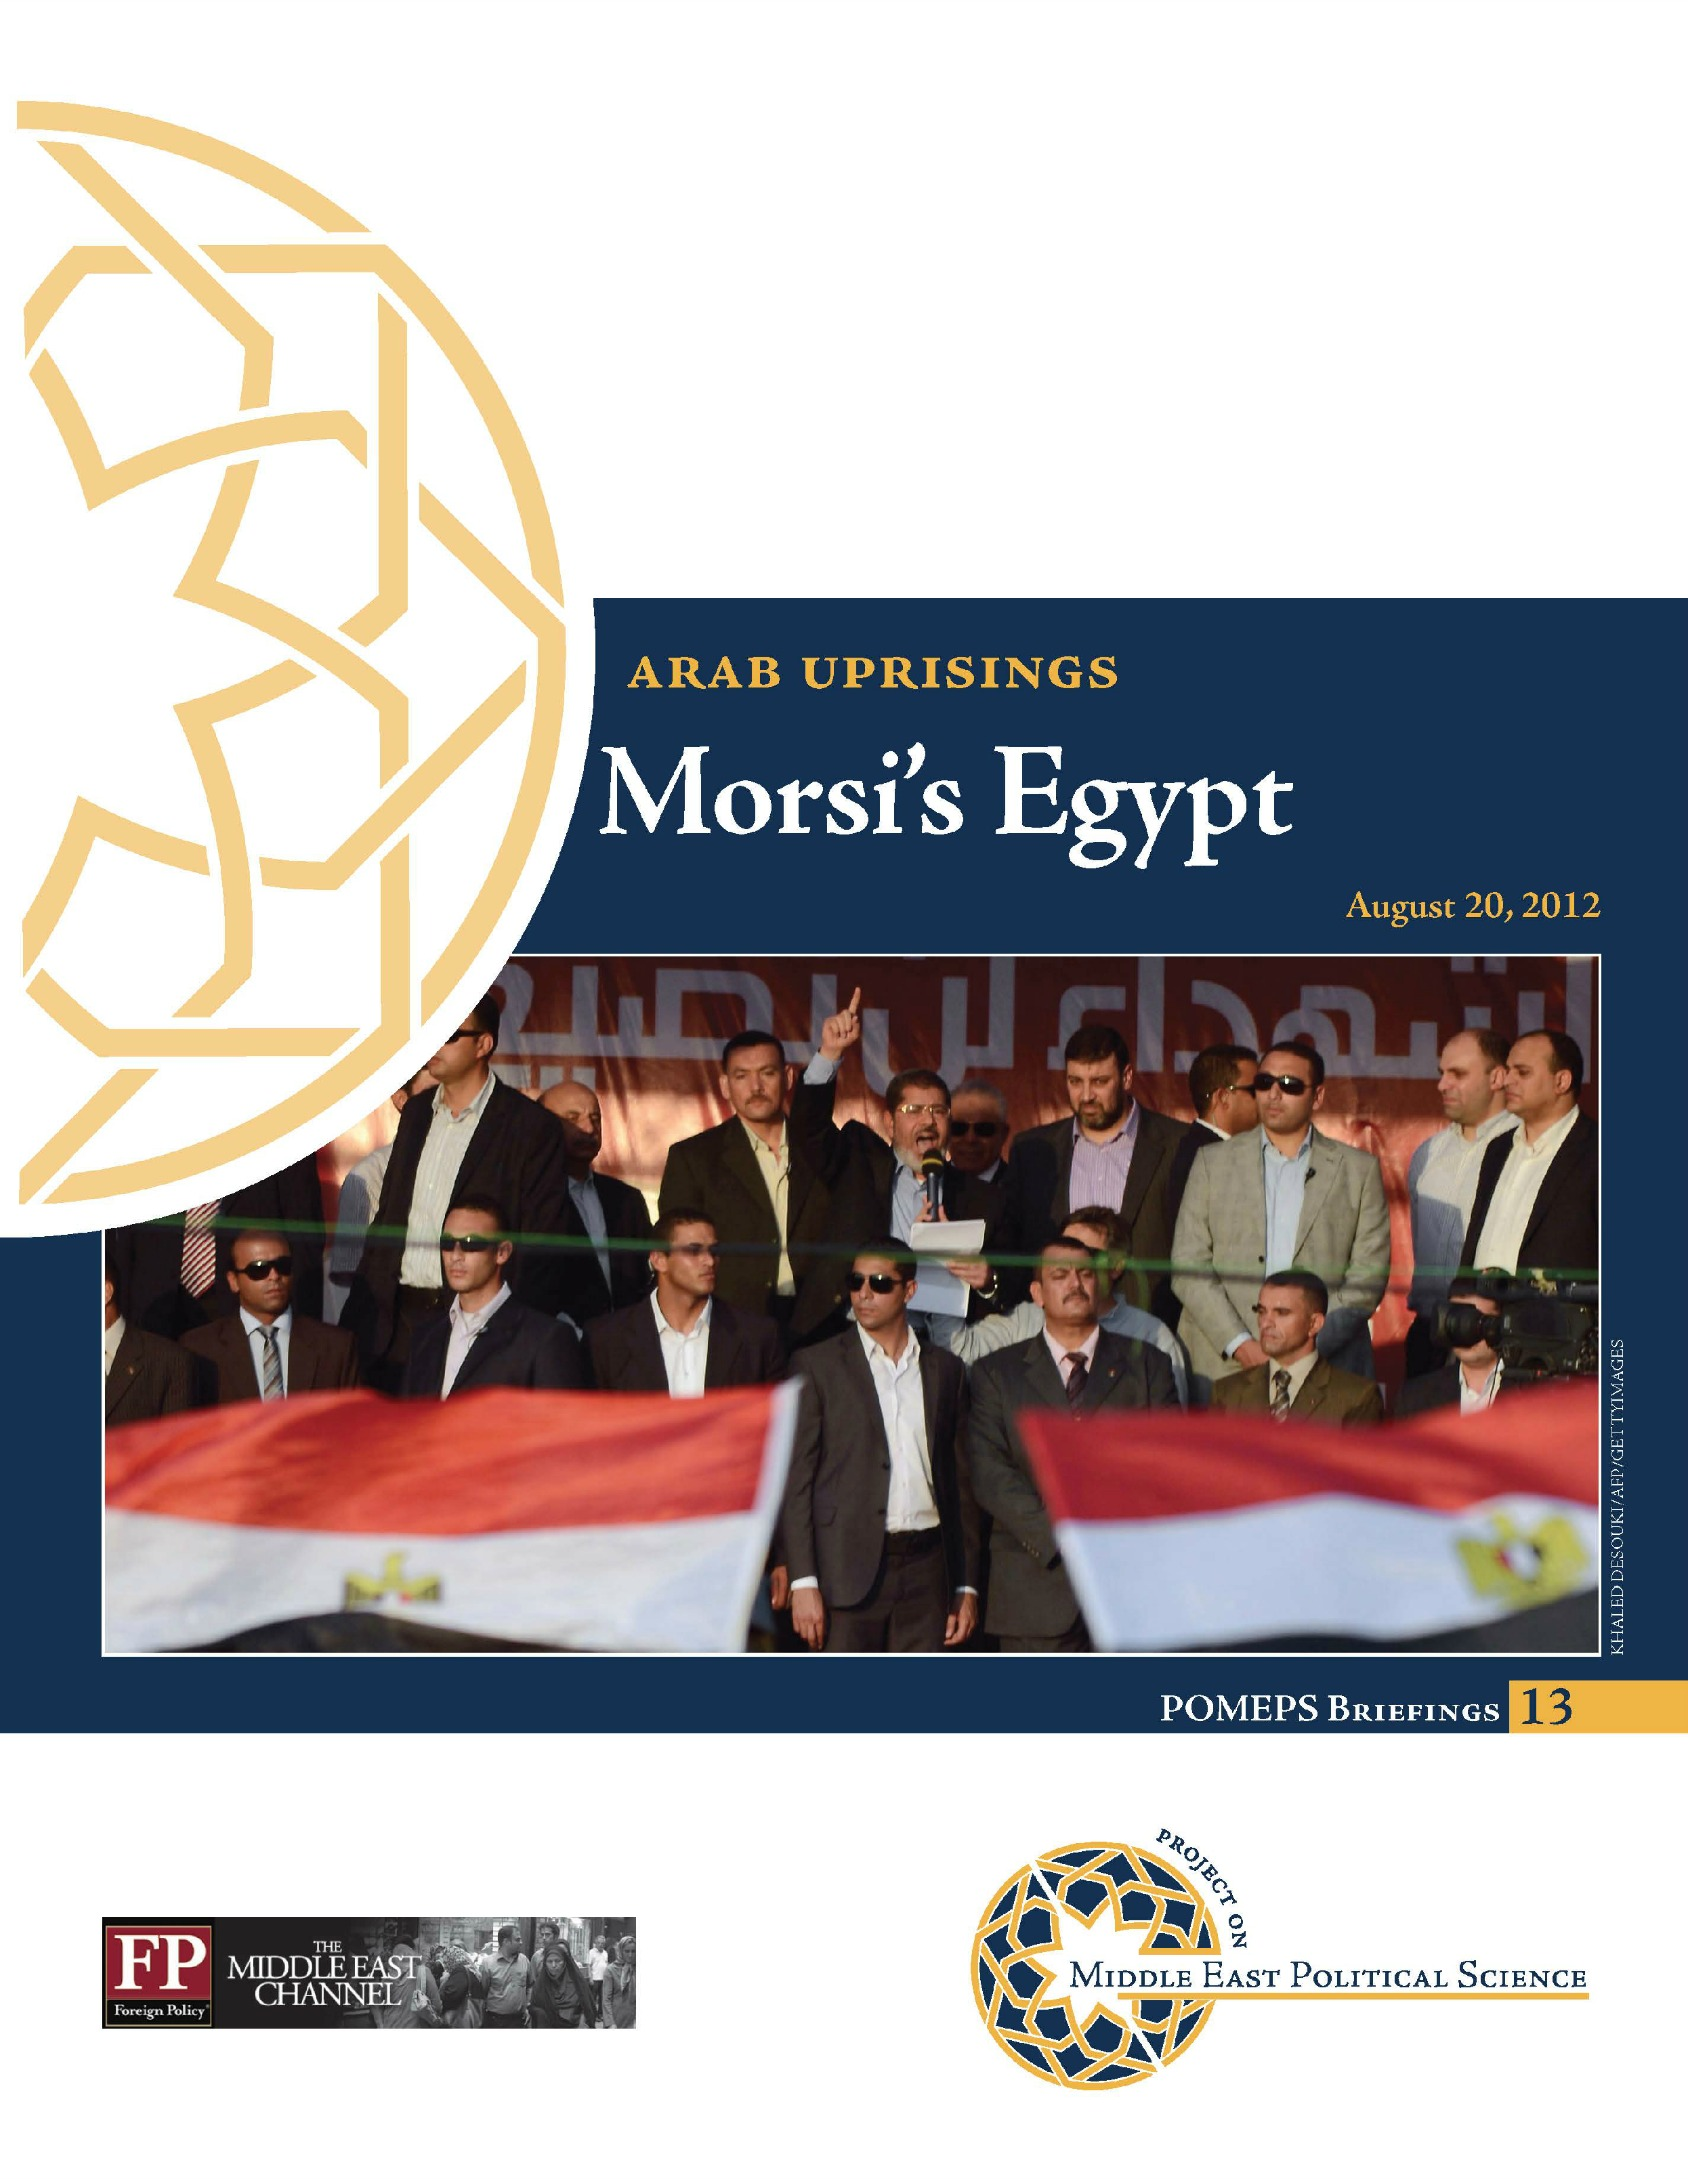 Arab Uprisings: Morsi's Egypt